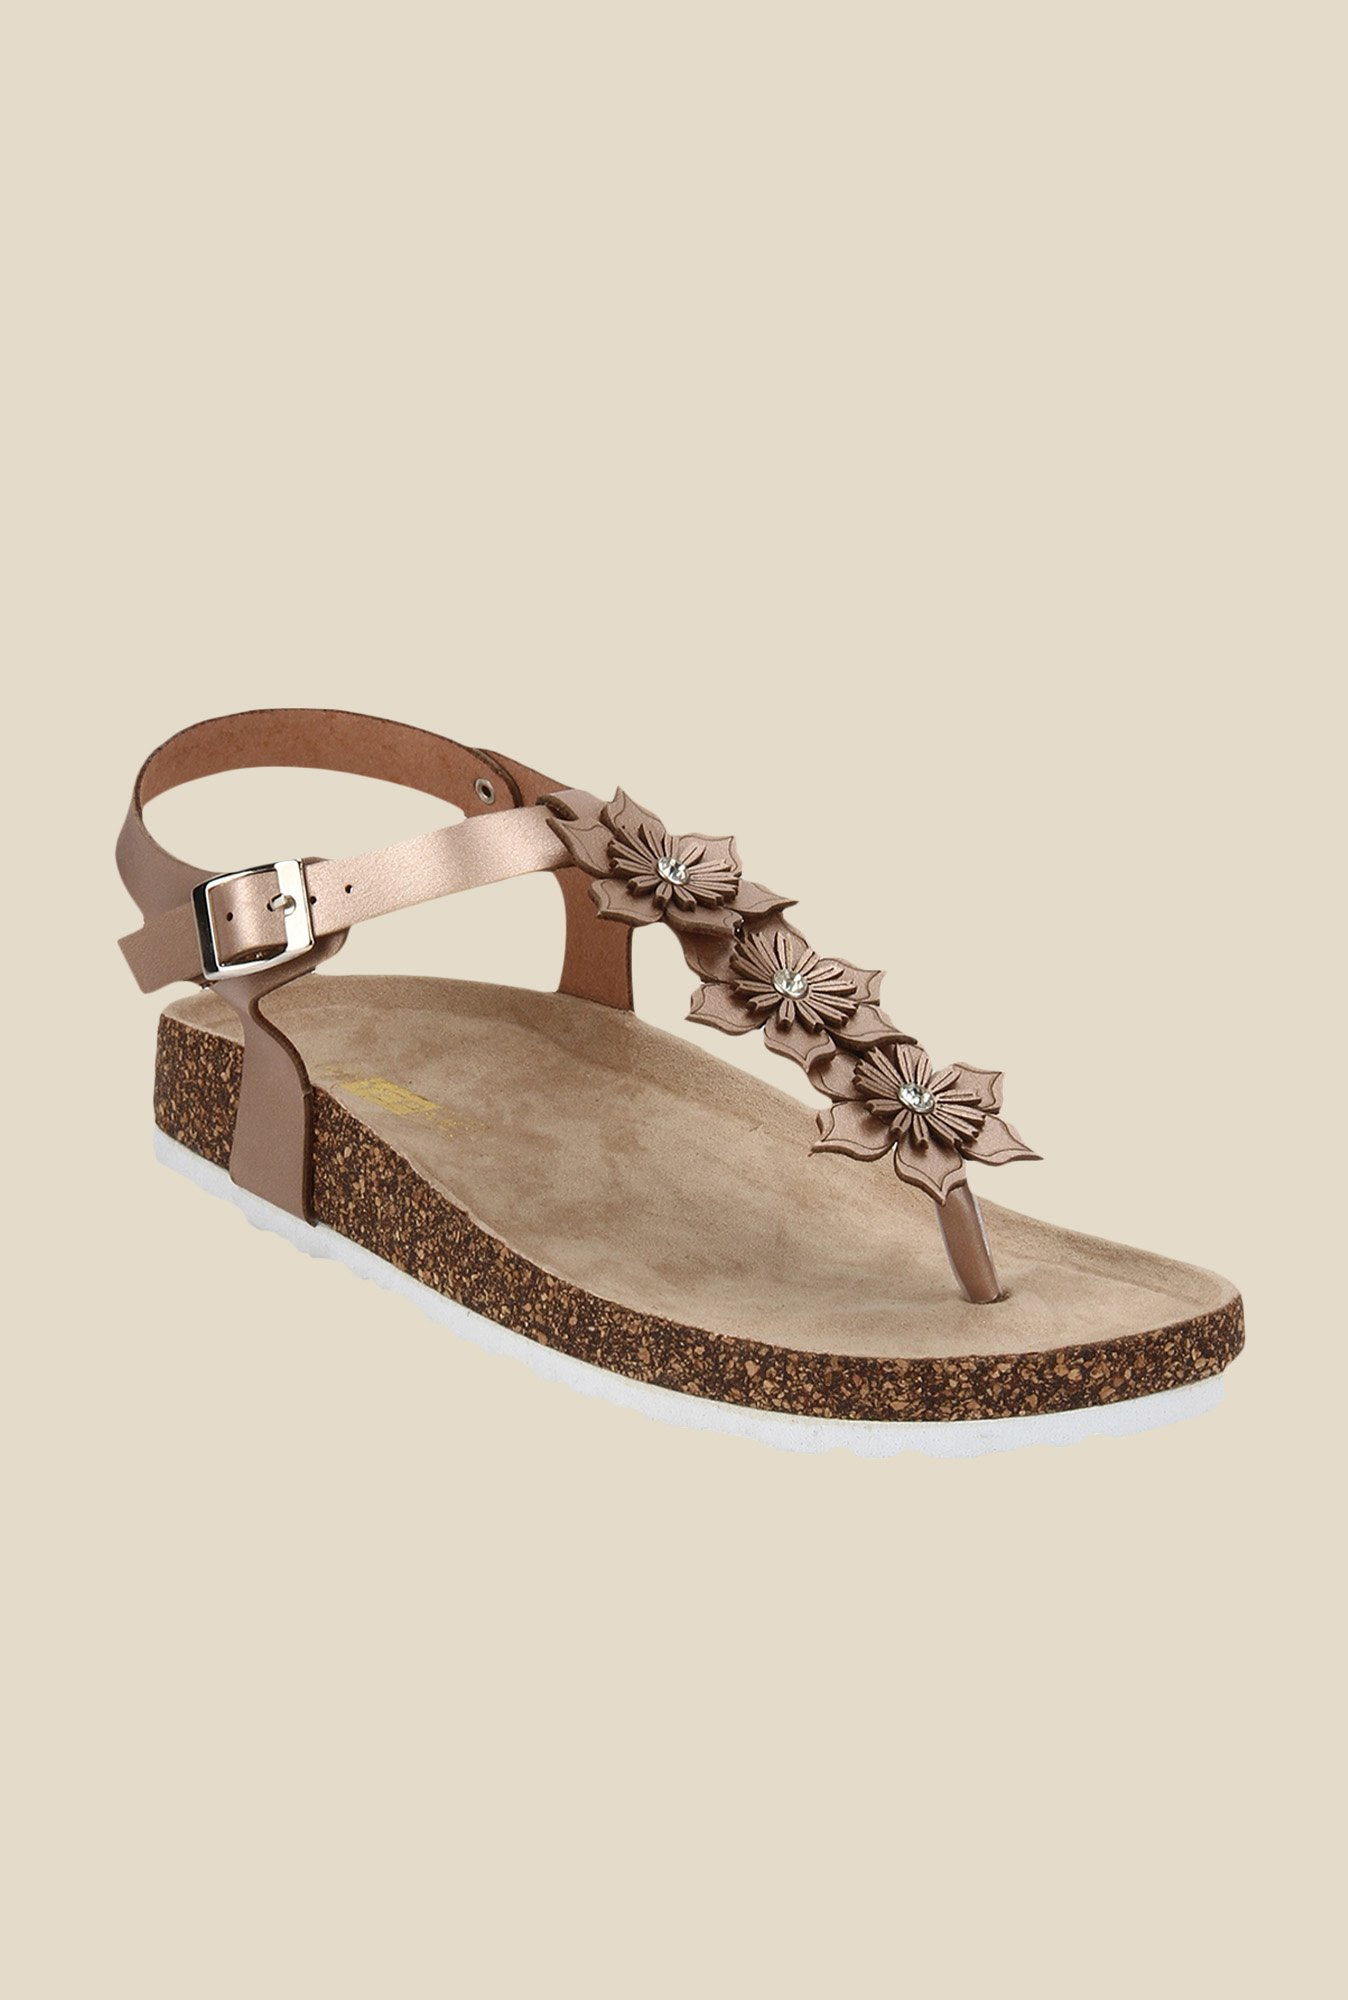 Yepme Shiny Brown Ankle Strap Sandals